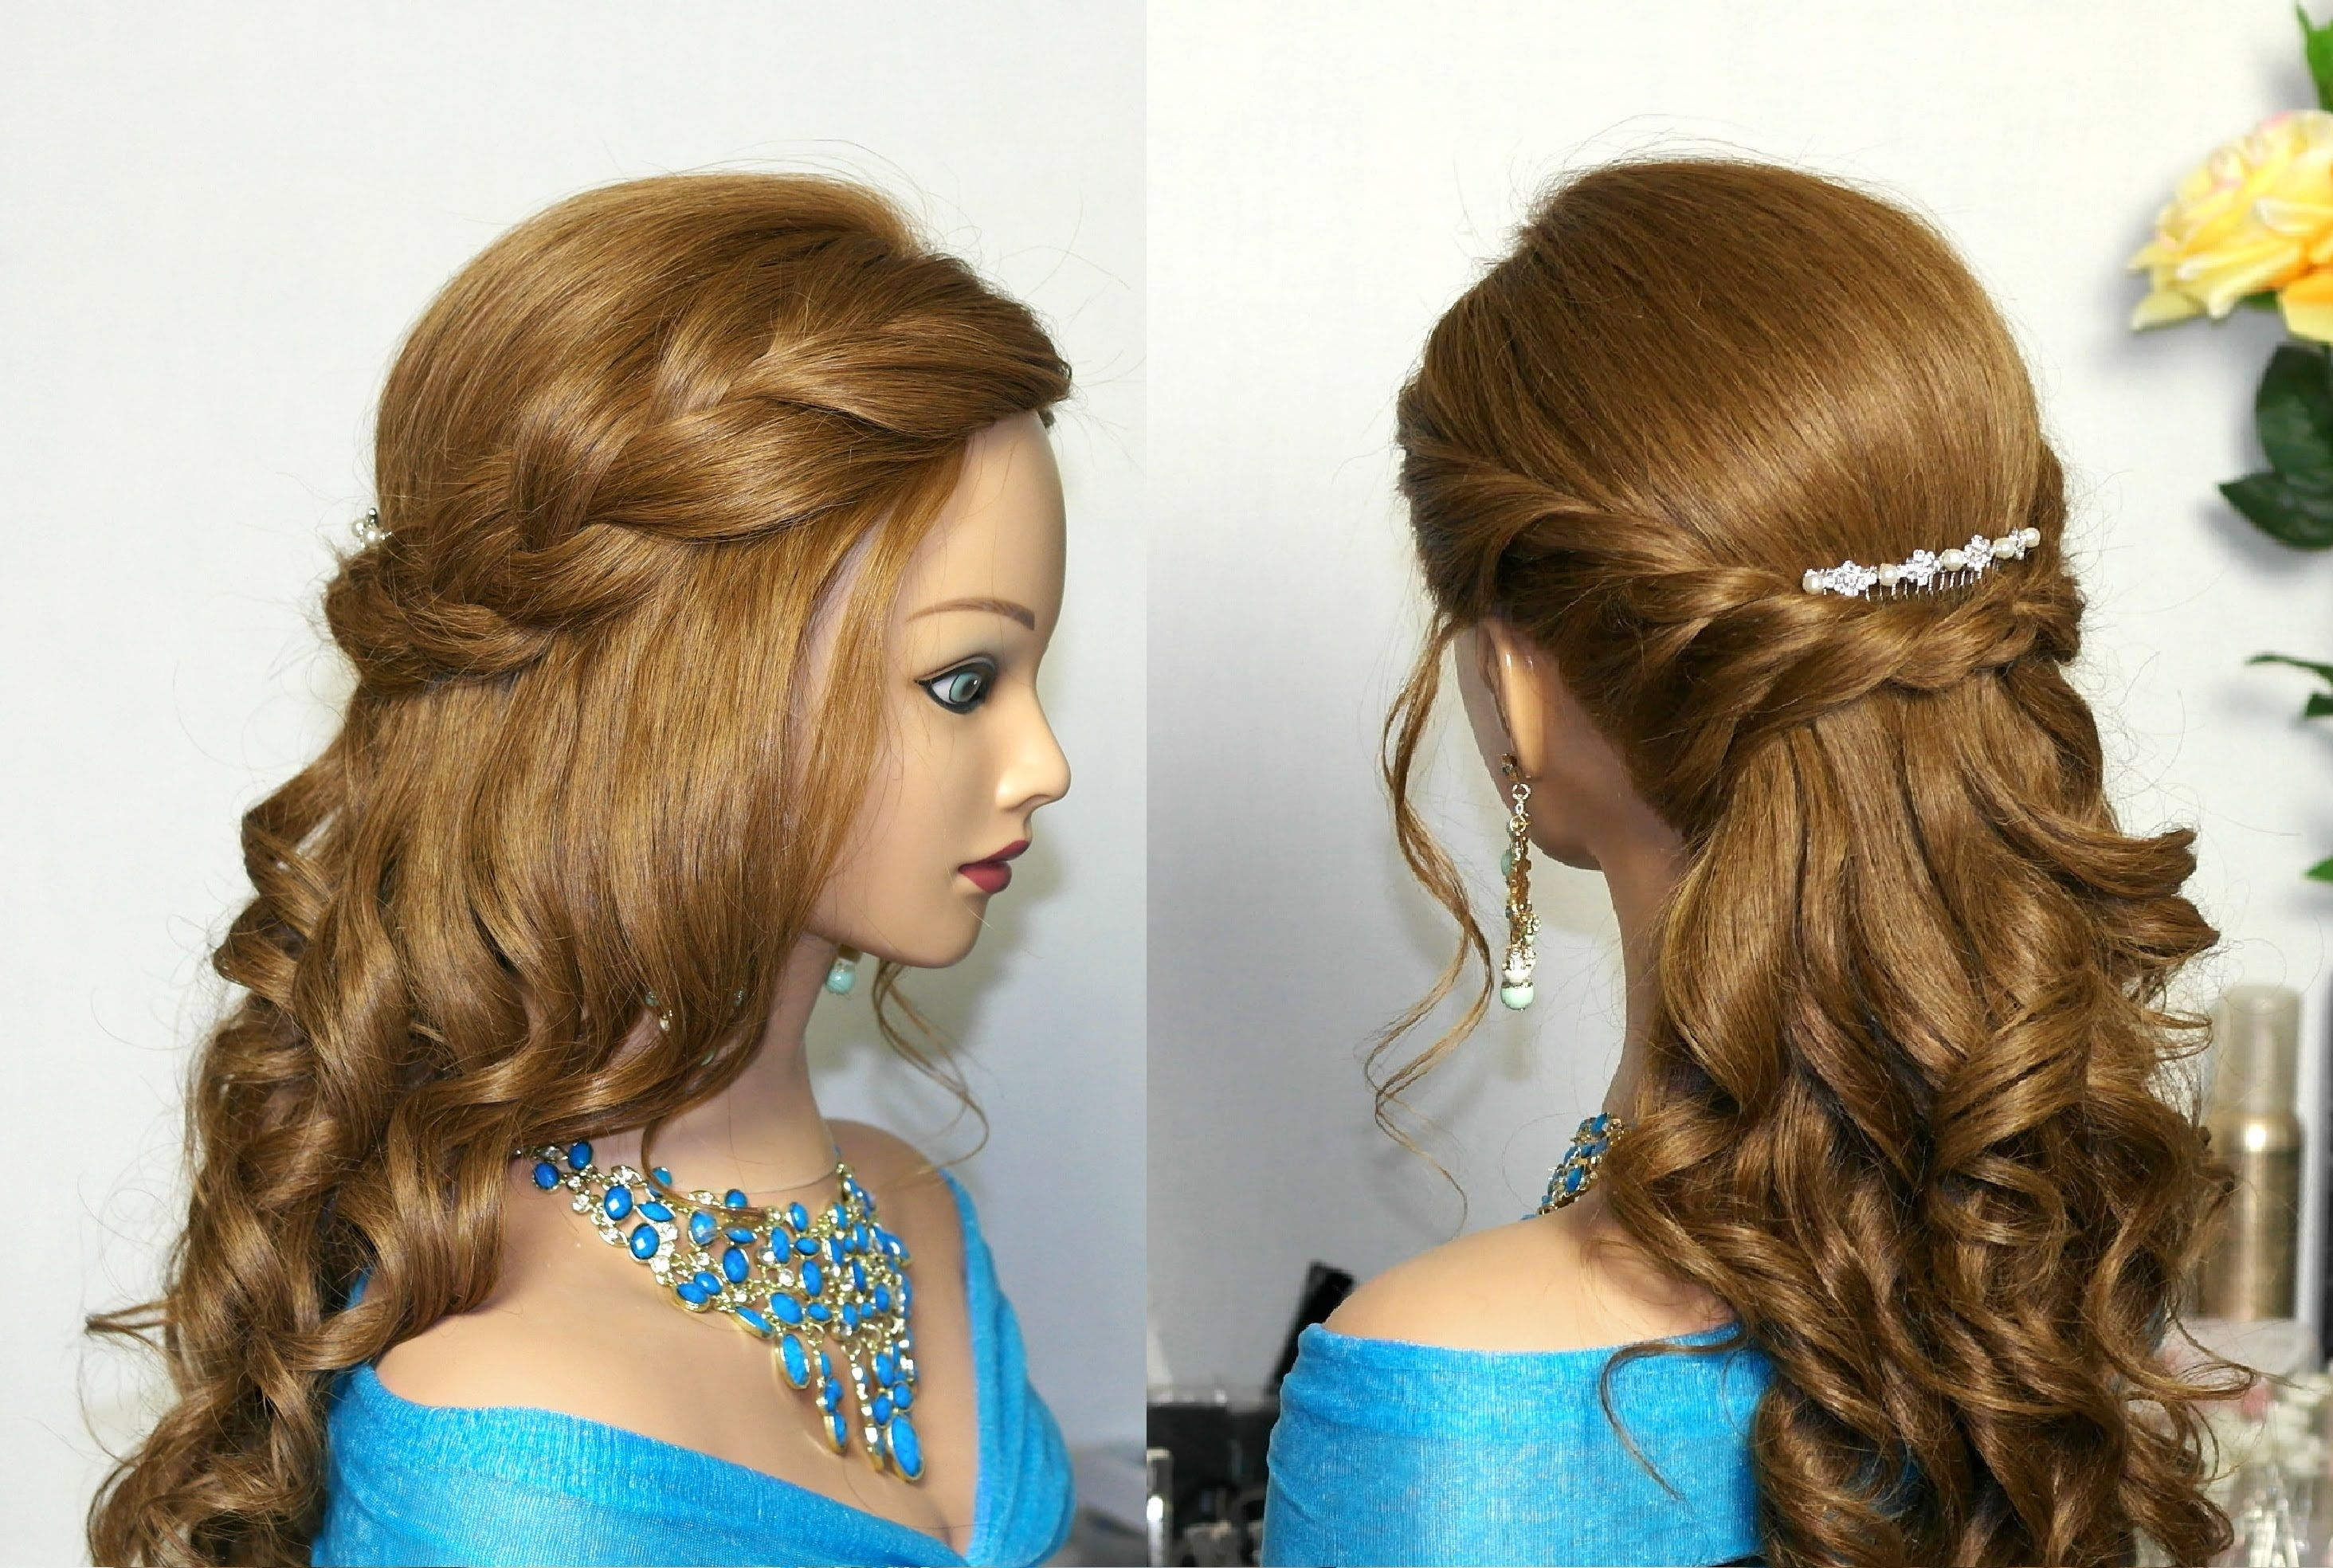 Pin By Vaani Bhadra On Beauty Beleza Prom Hairstyles For Long Hair Long Hair Styles Hair Tutorial